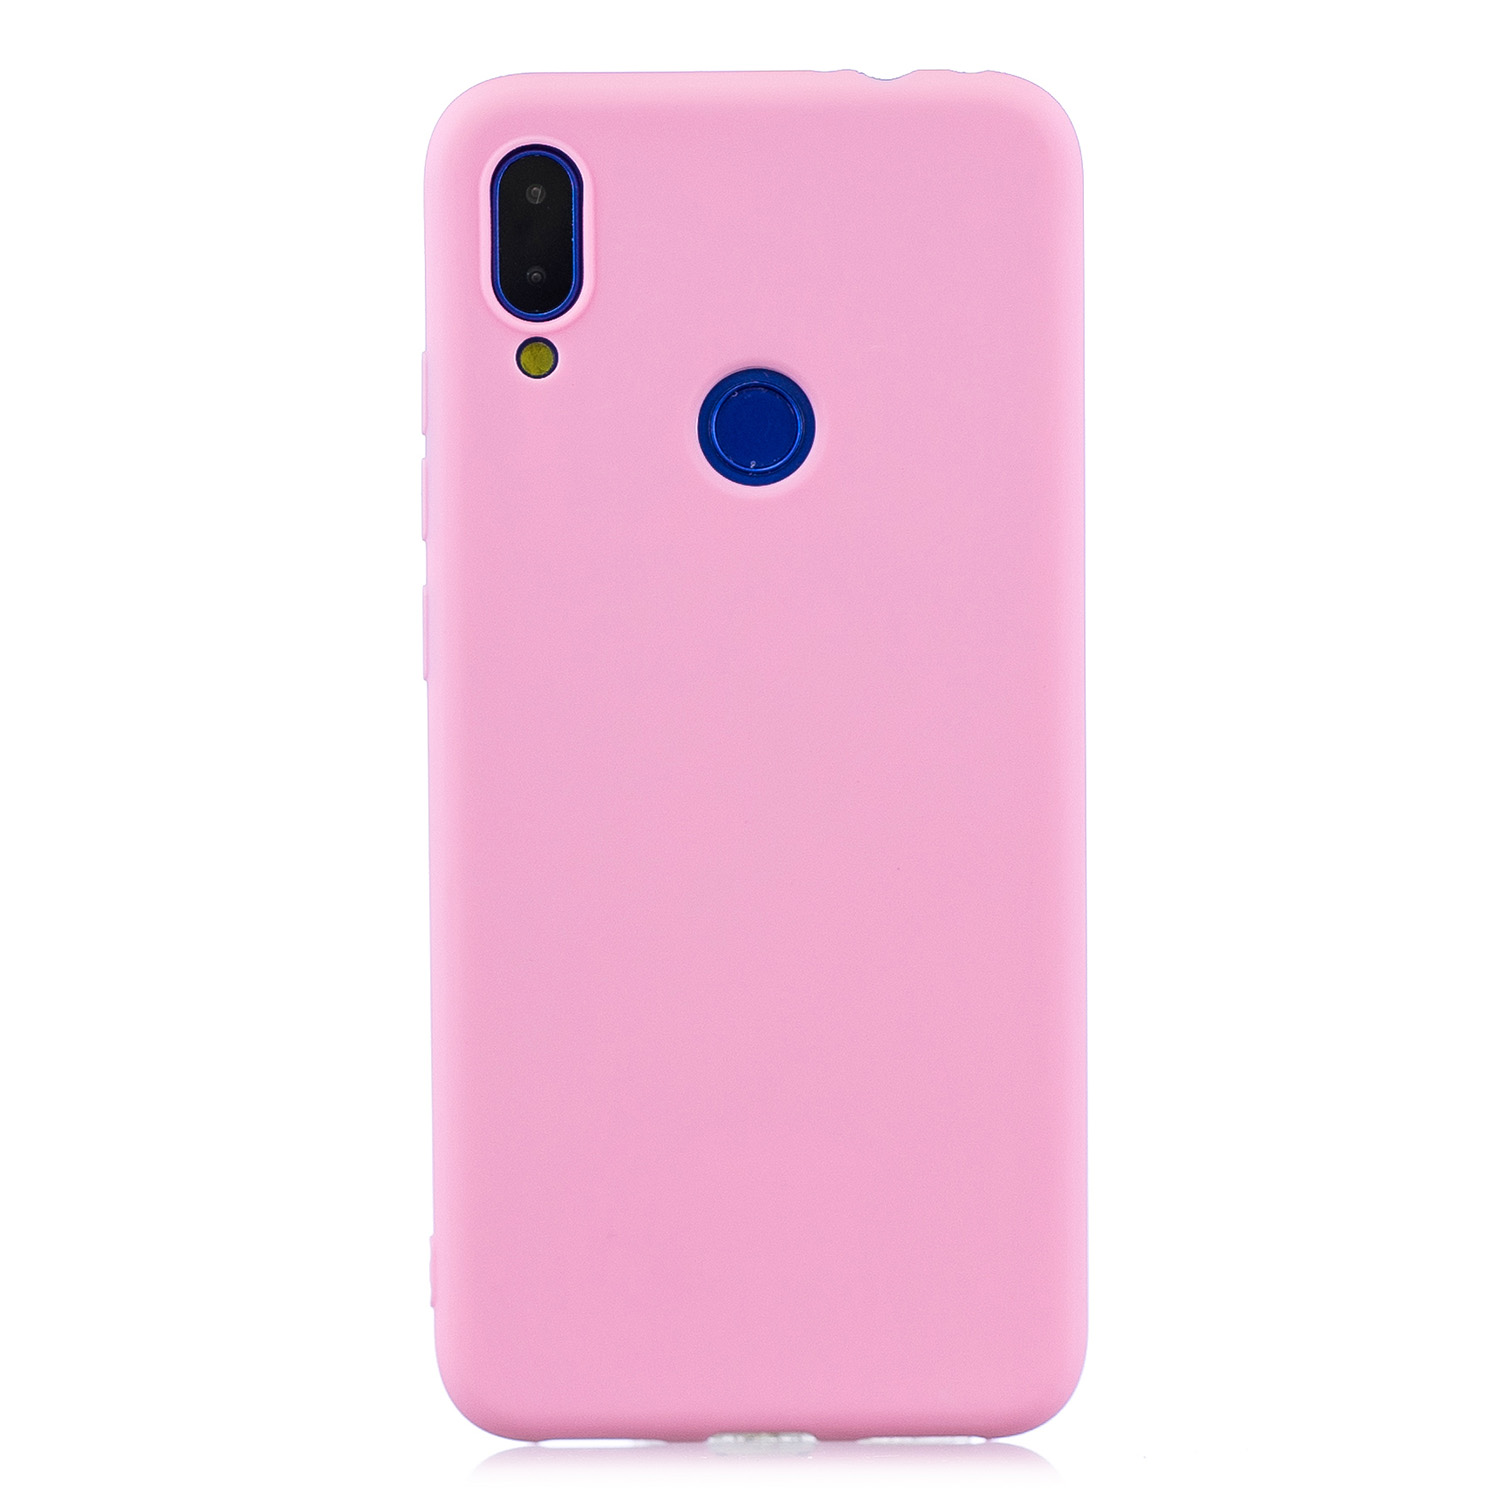 For Redmi note 7 Lovely Candy Color Matte TPU Anti-scratch Non-slip Protective Cover Back Case dark pink